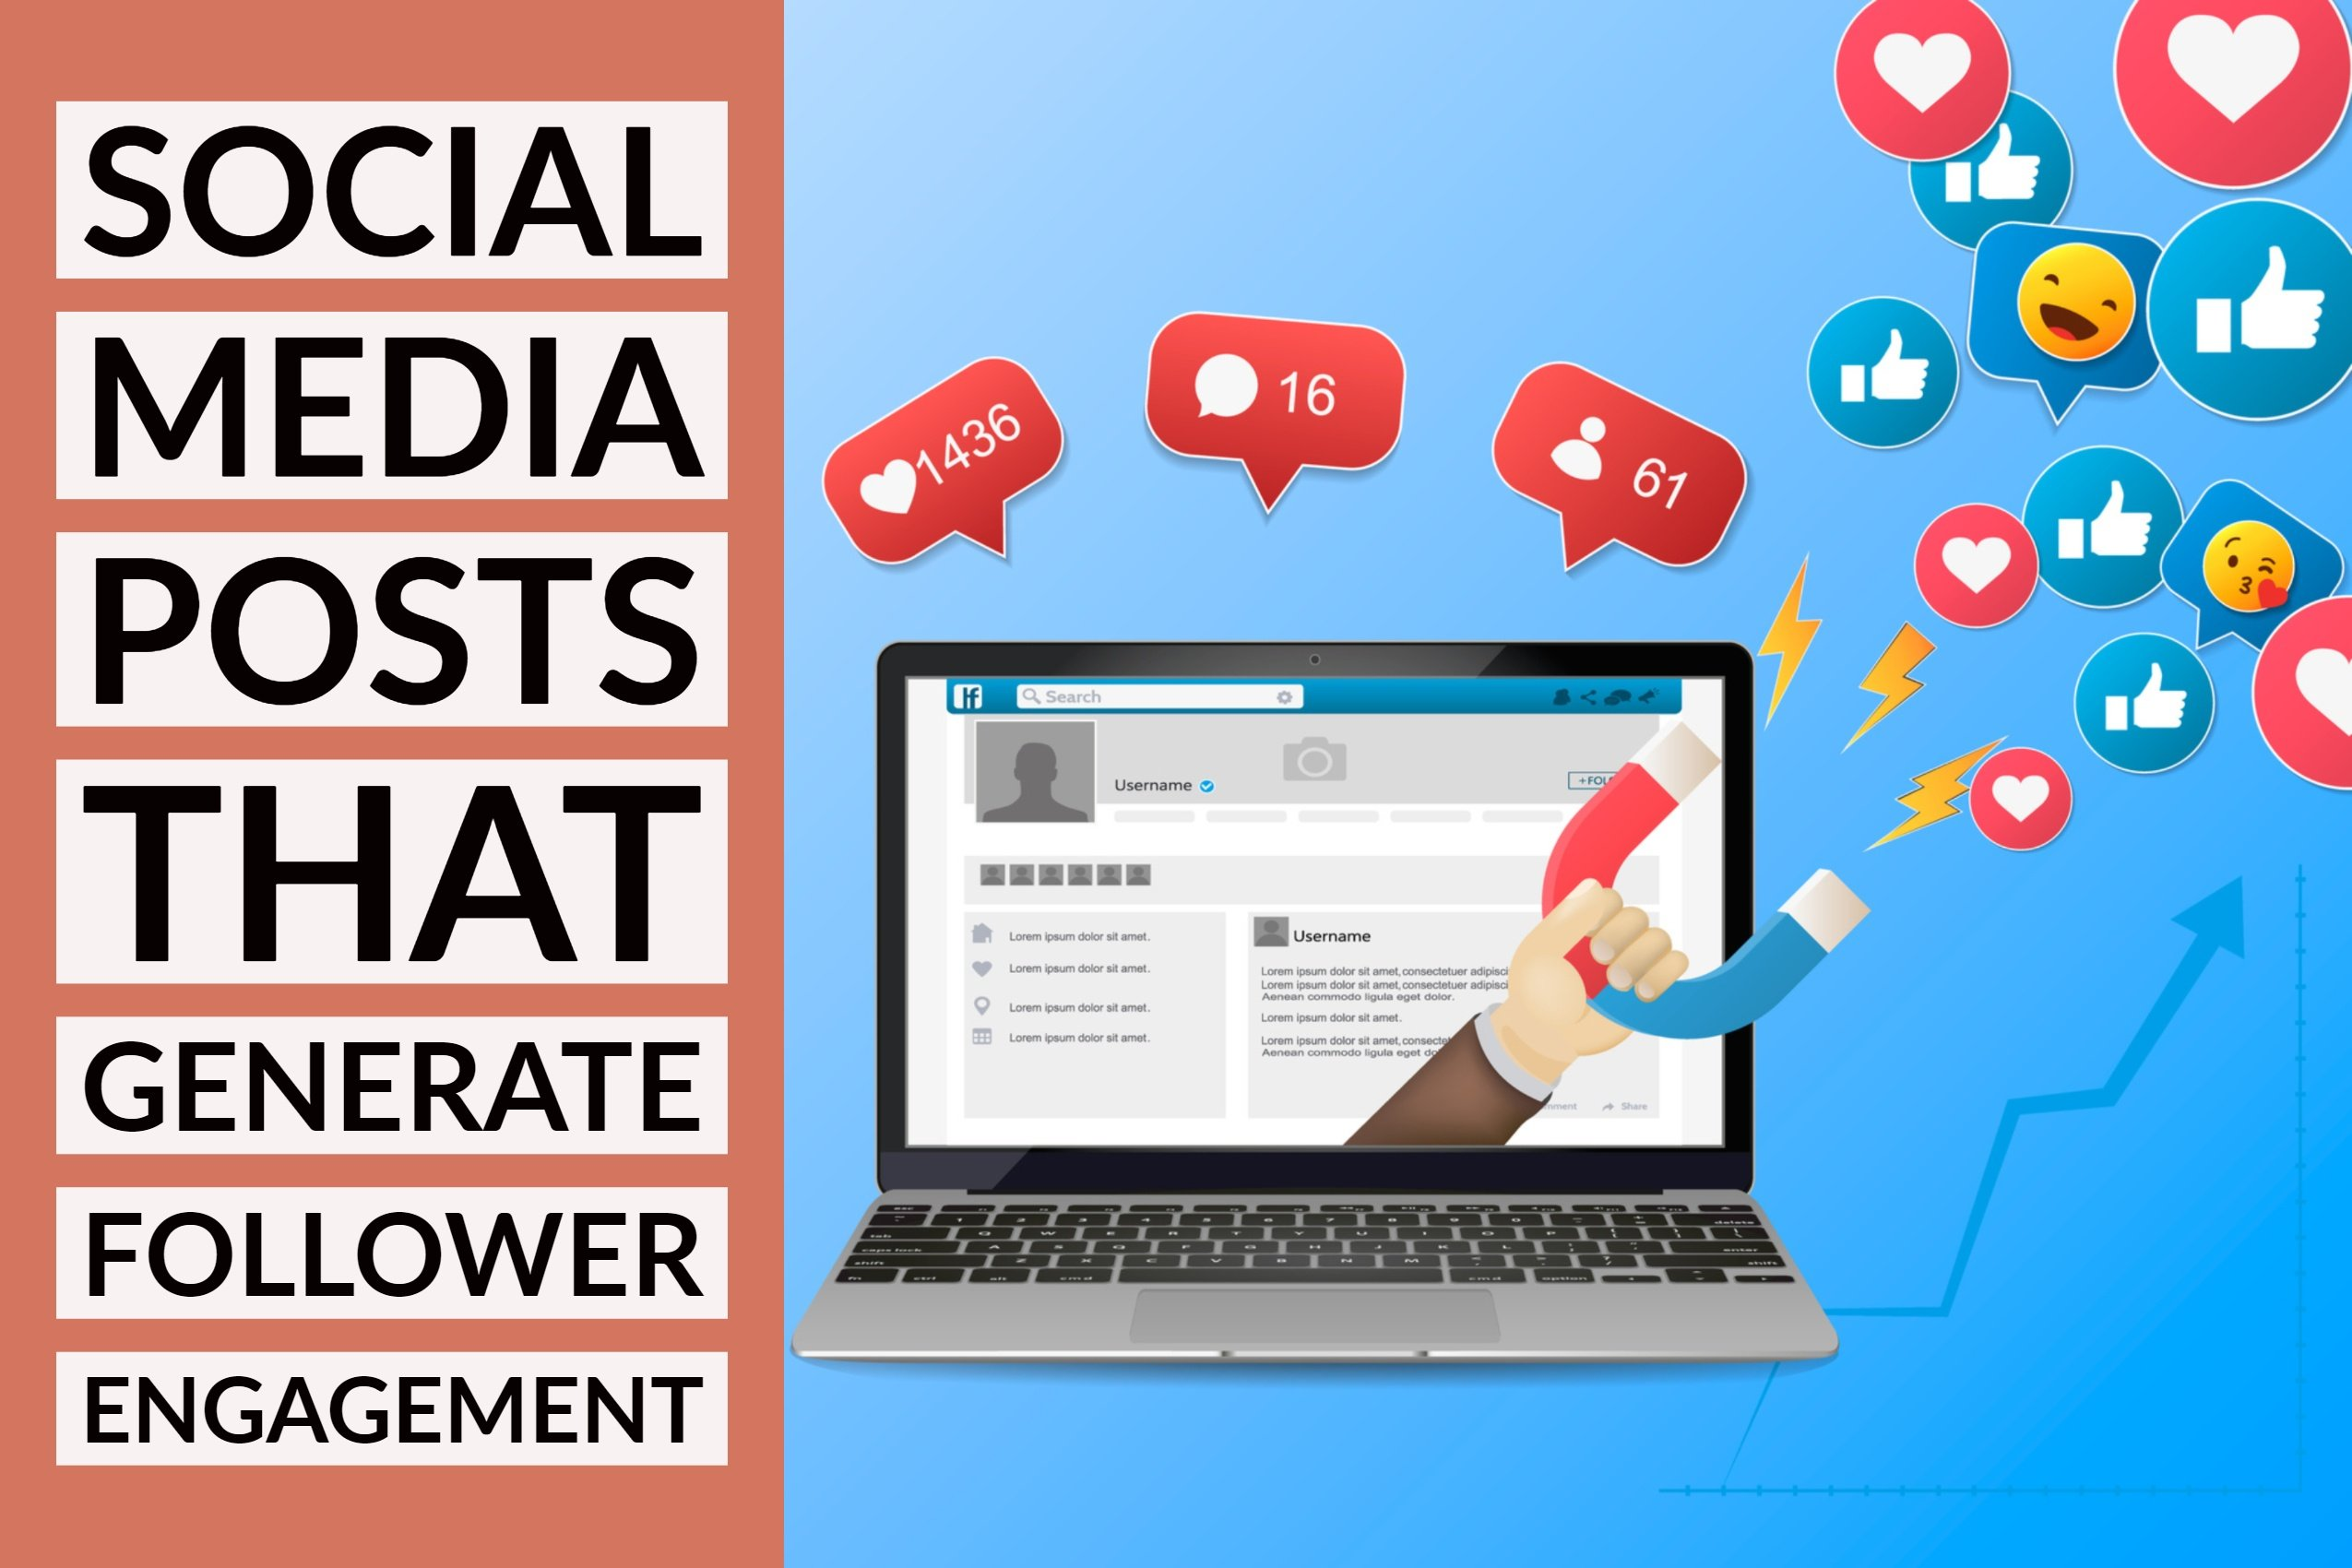 Social Media Posts That Generate Follower Engagement